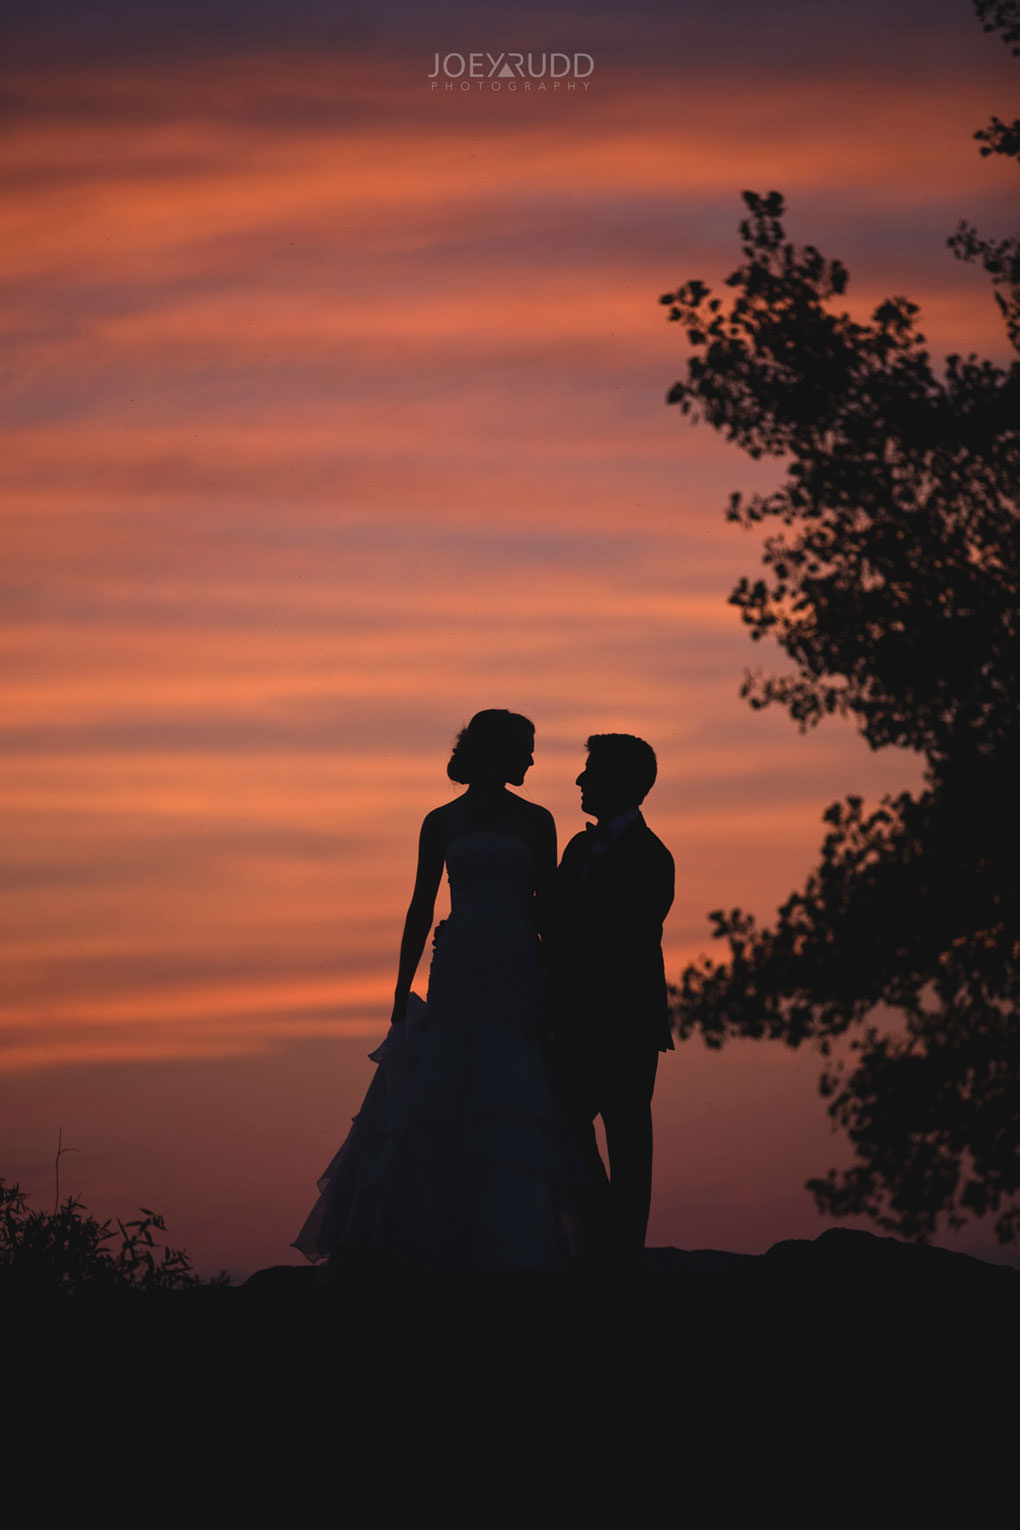 Ottawa Wedding Photos at Andrew Haydon Park and Brittania Beach by Ottawa Wedding Photographer Joey Rudd Photography Bride & Groom Photo Sunset Couple